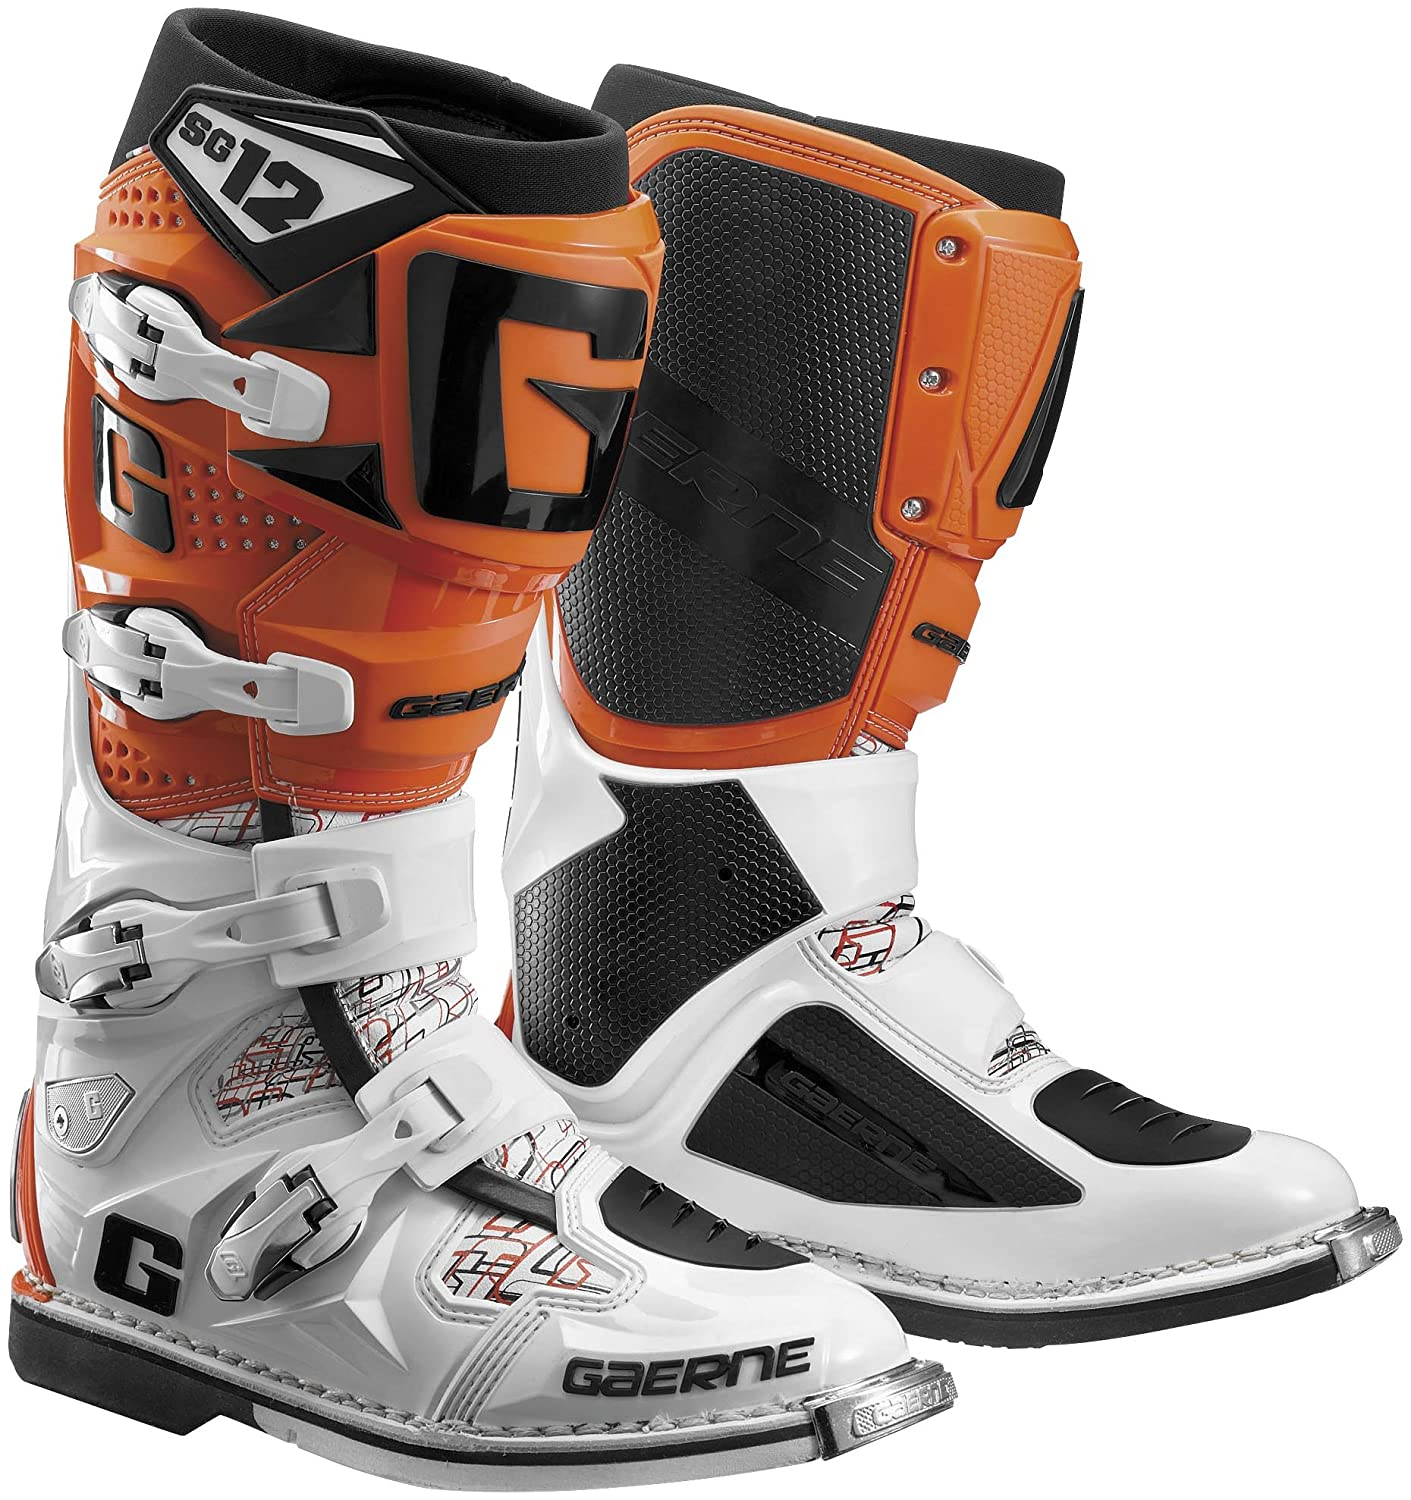 Gaerne Sg12 Adult Off Road Motorcycle Boots Black